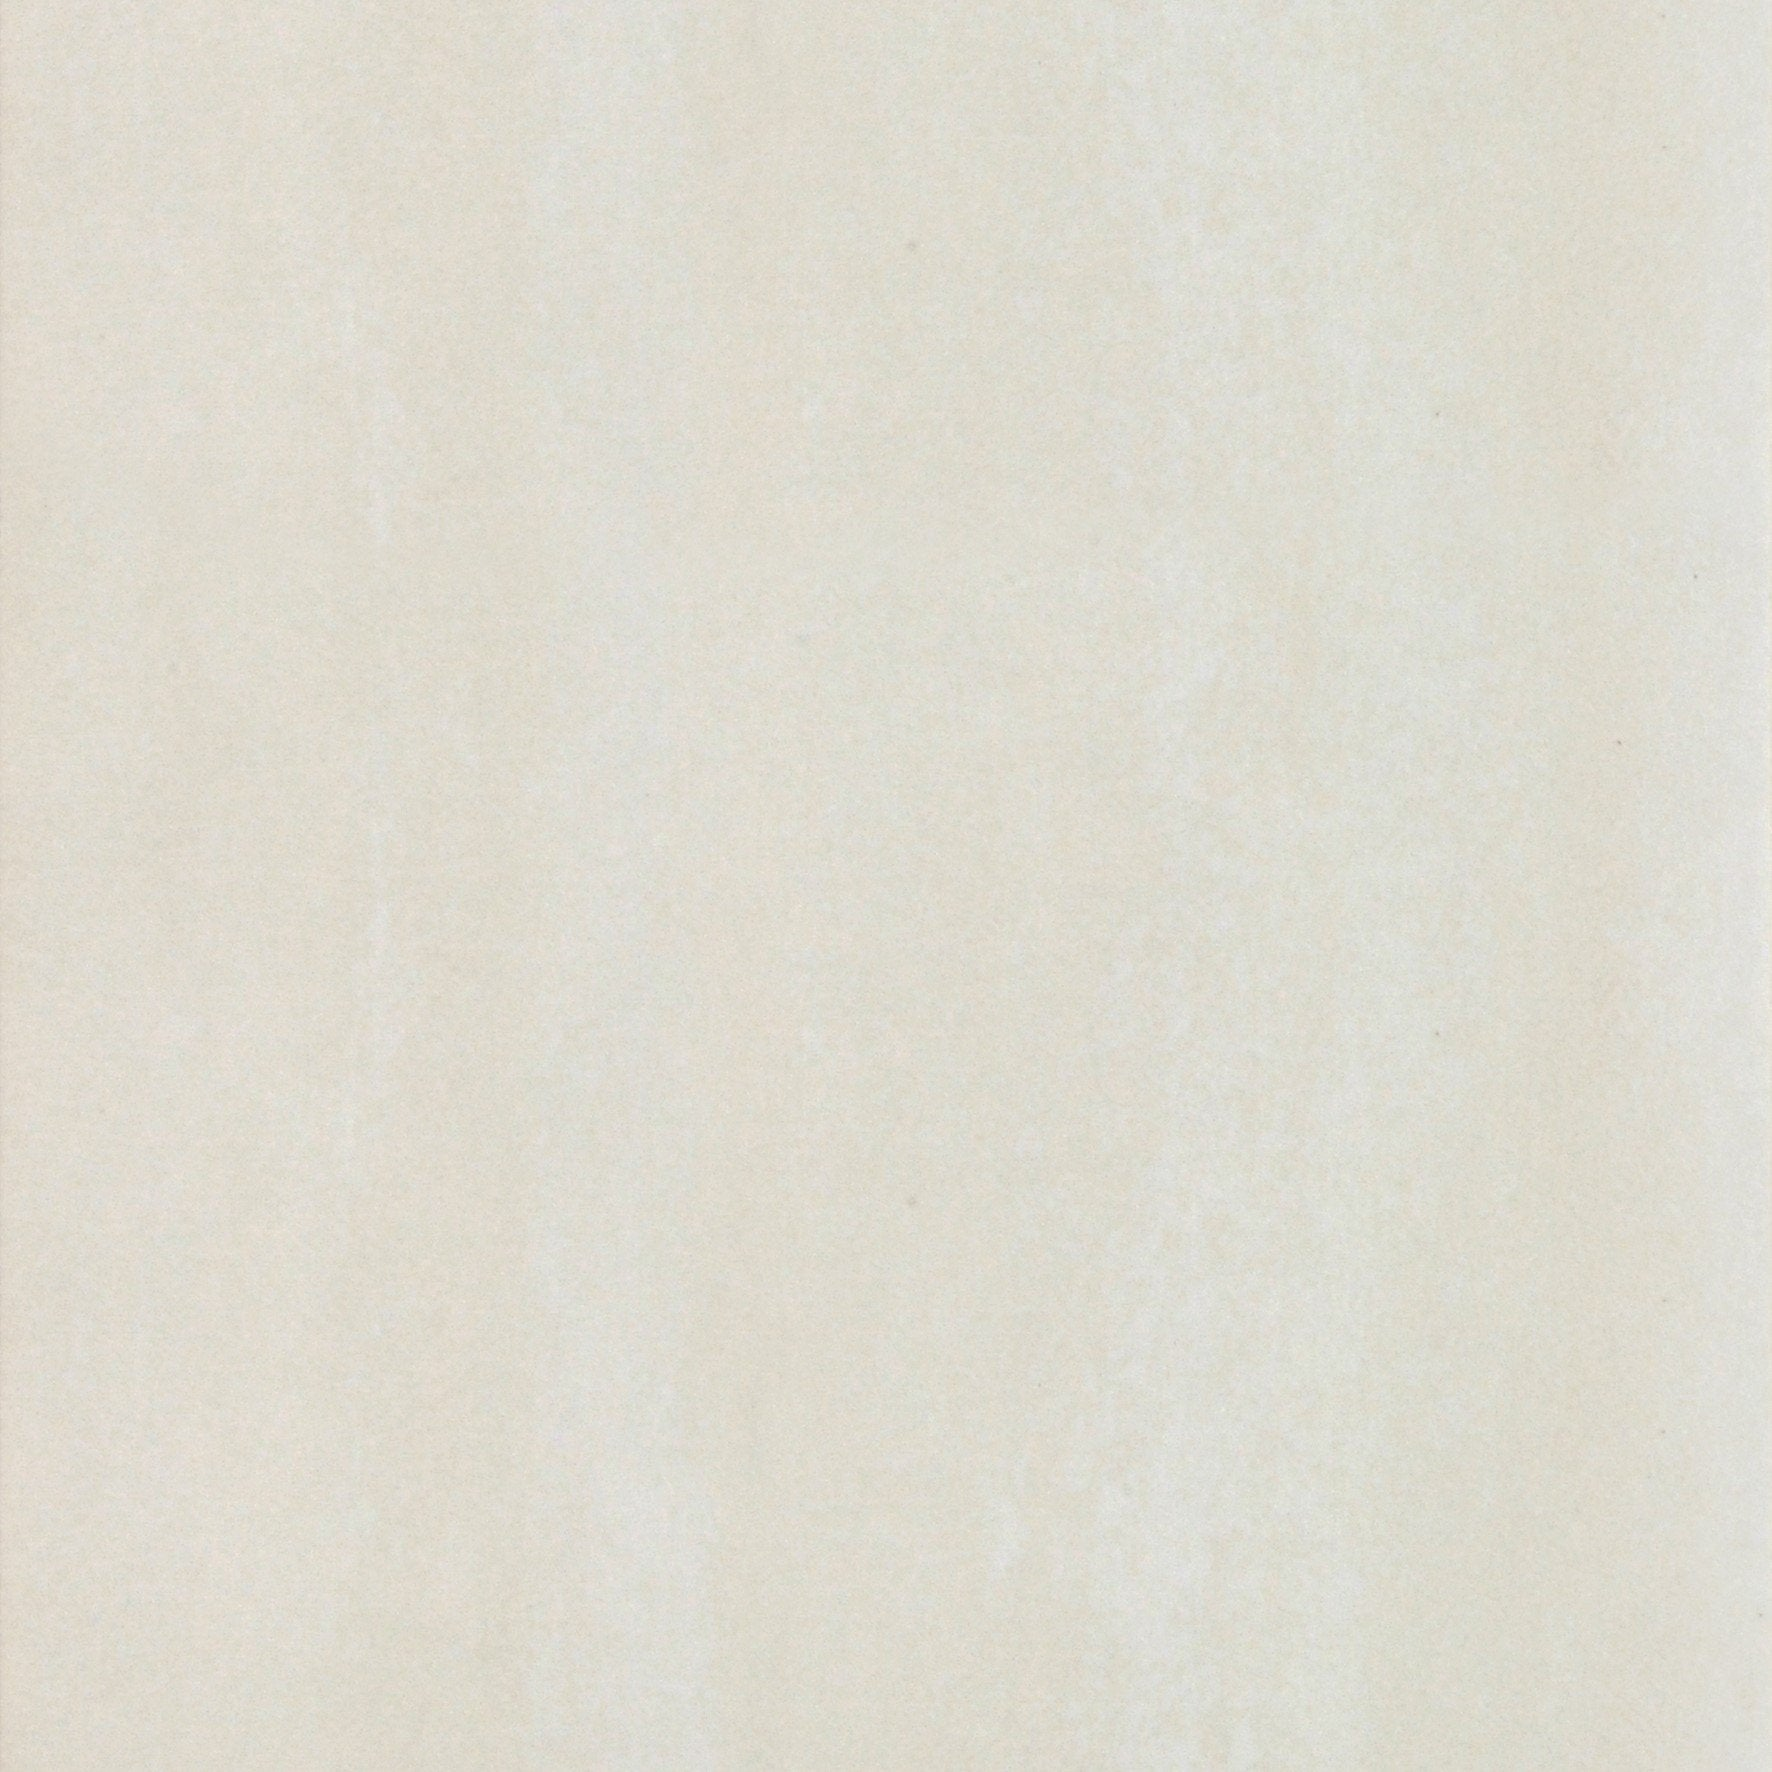 RAK - 6 Dolomite Matt Light Grey Porcelain Tiles Per Box - 300x600mm